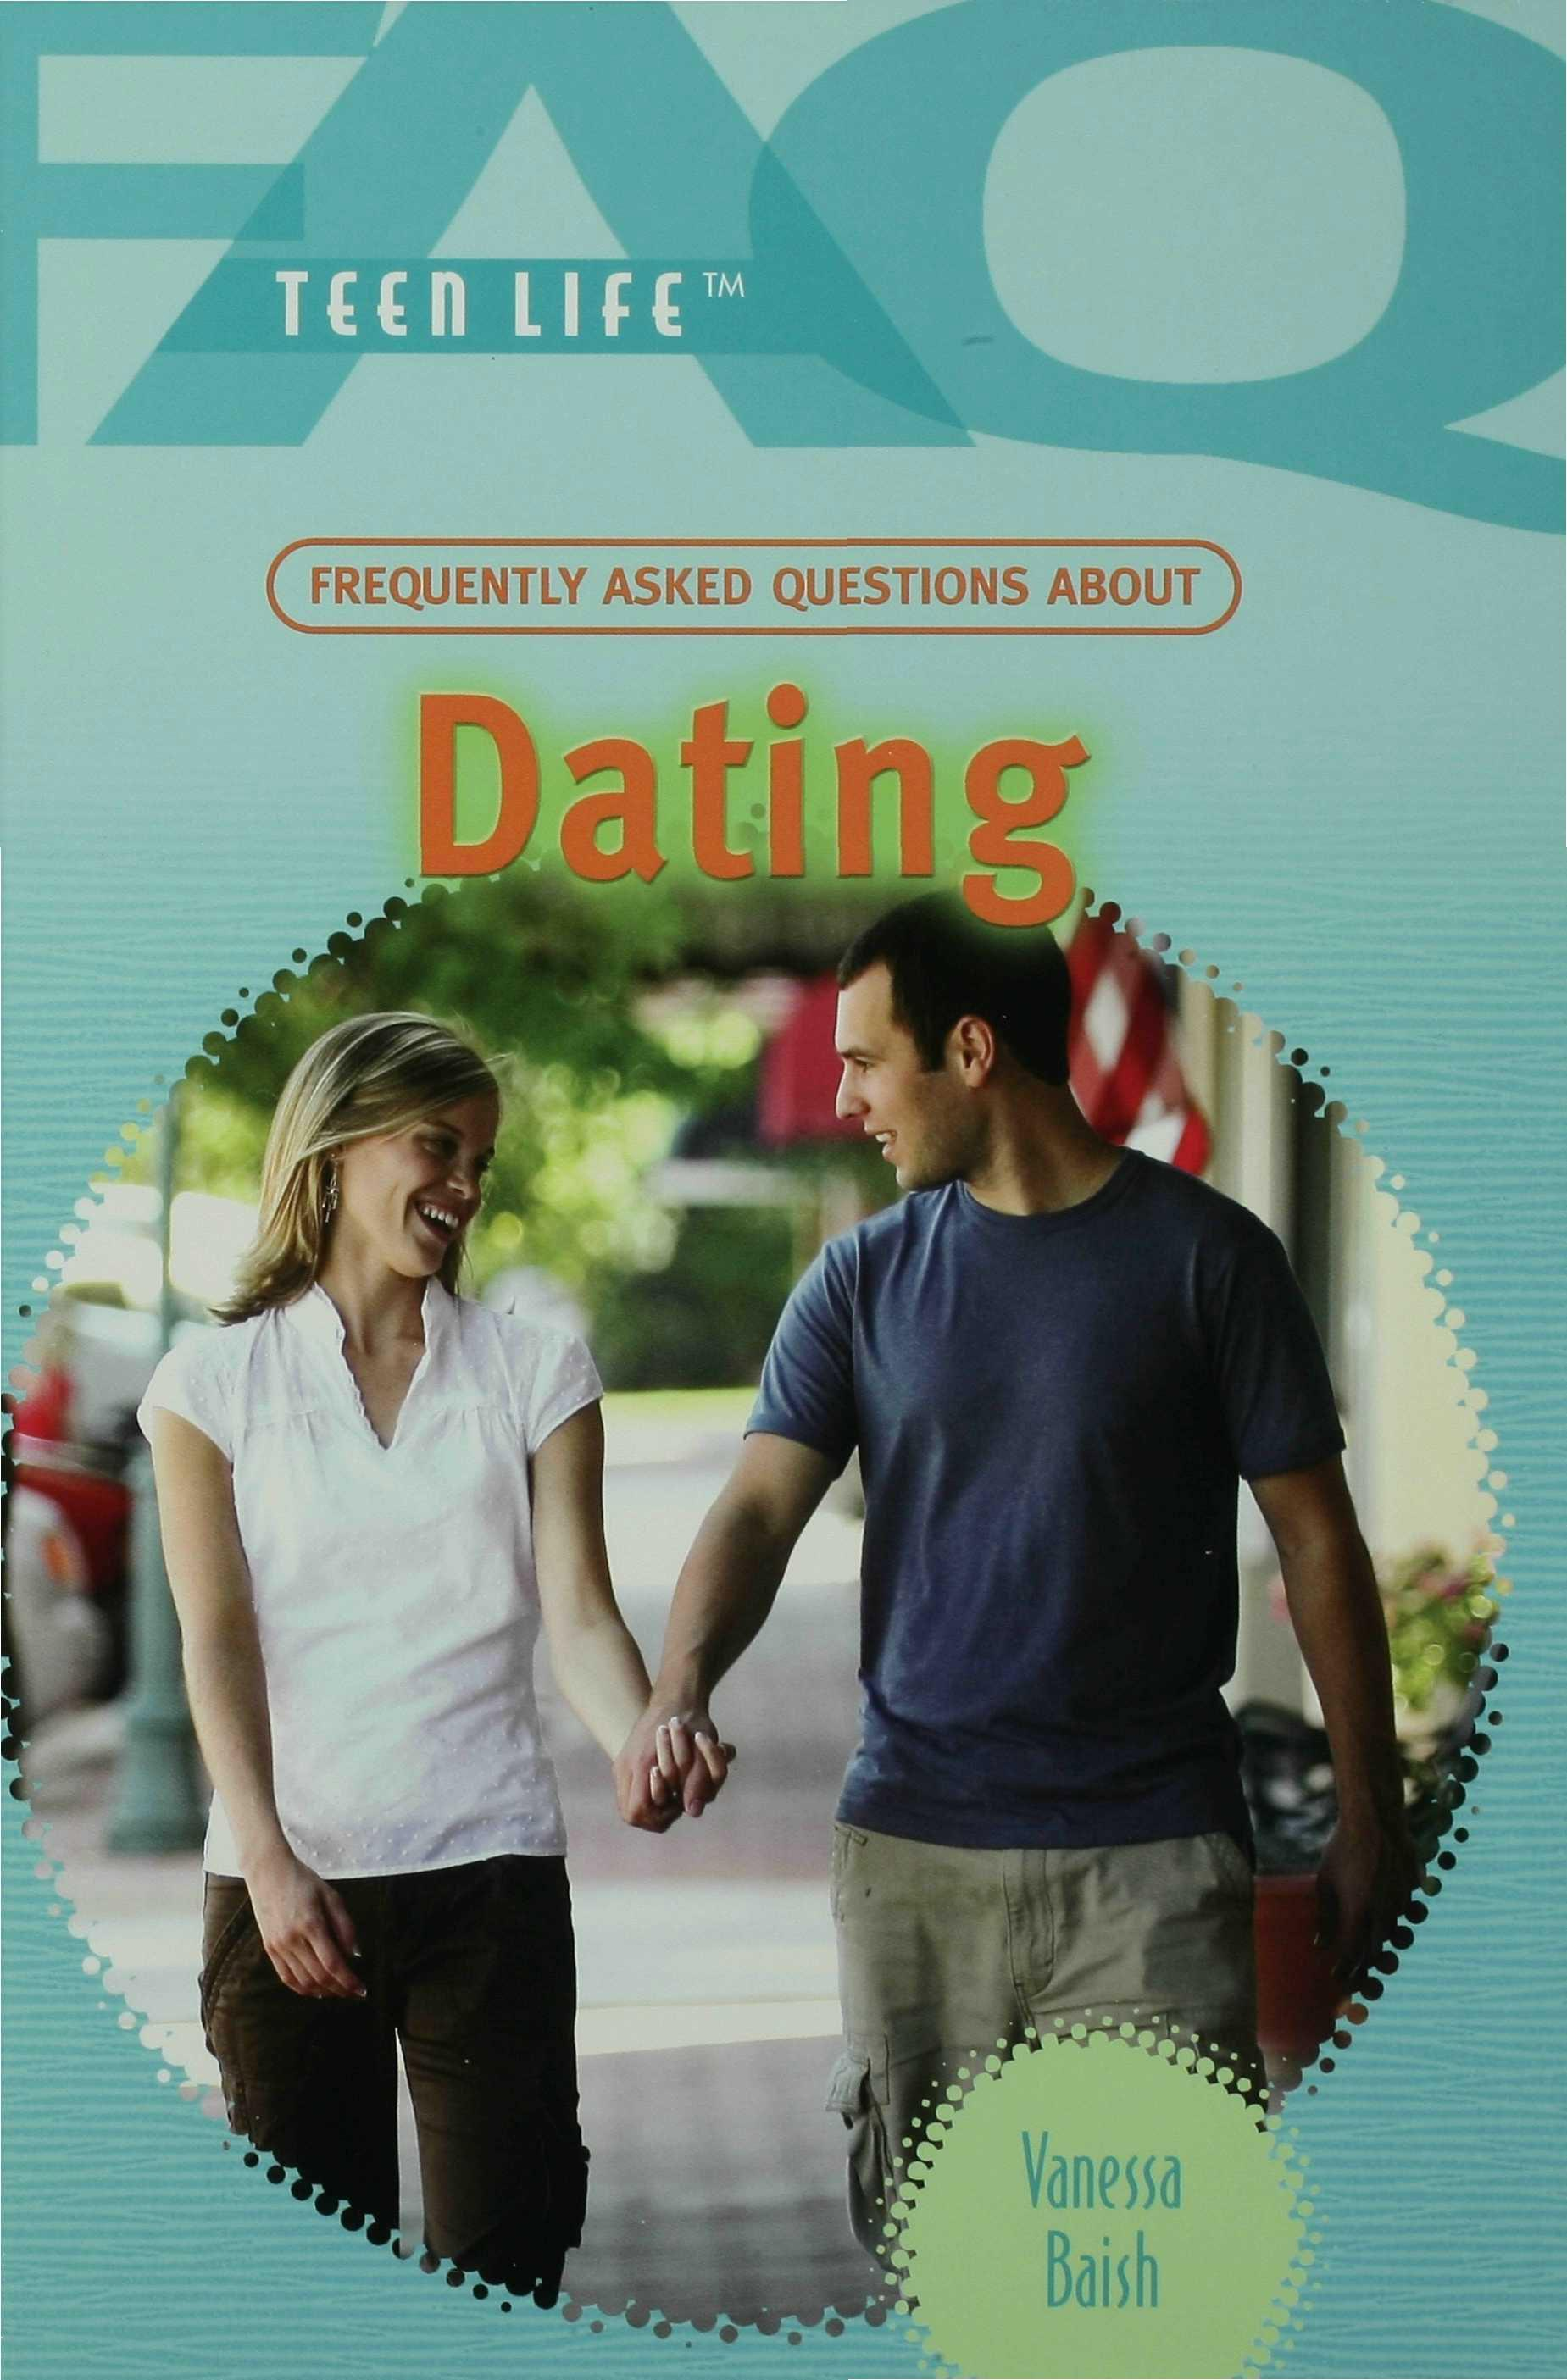 Frequently Asked Questions About Dating